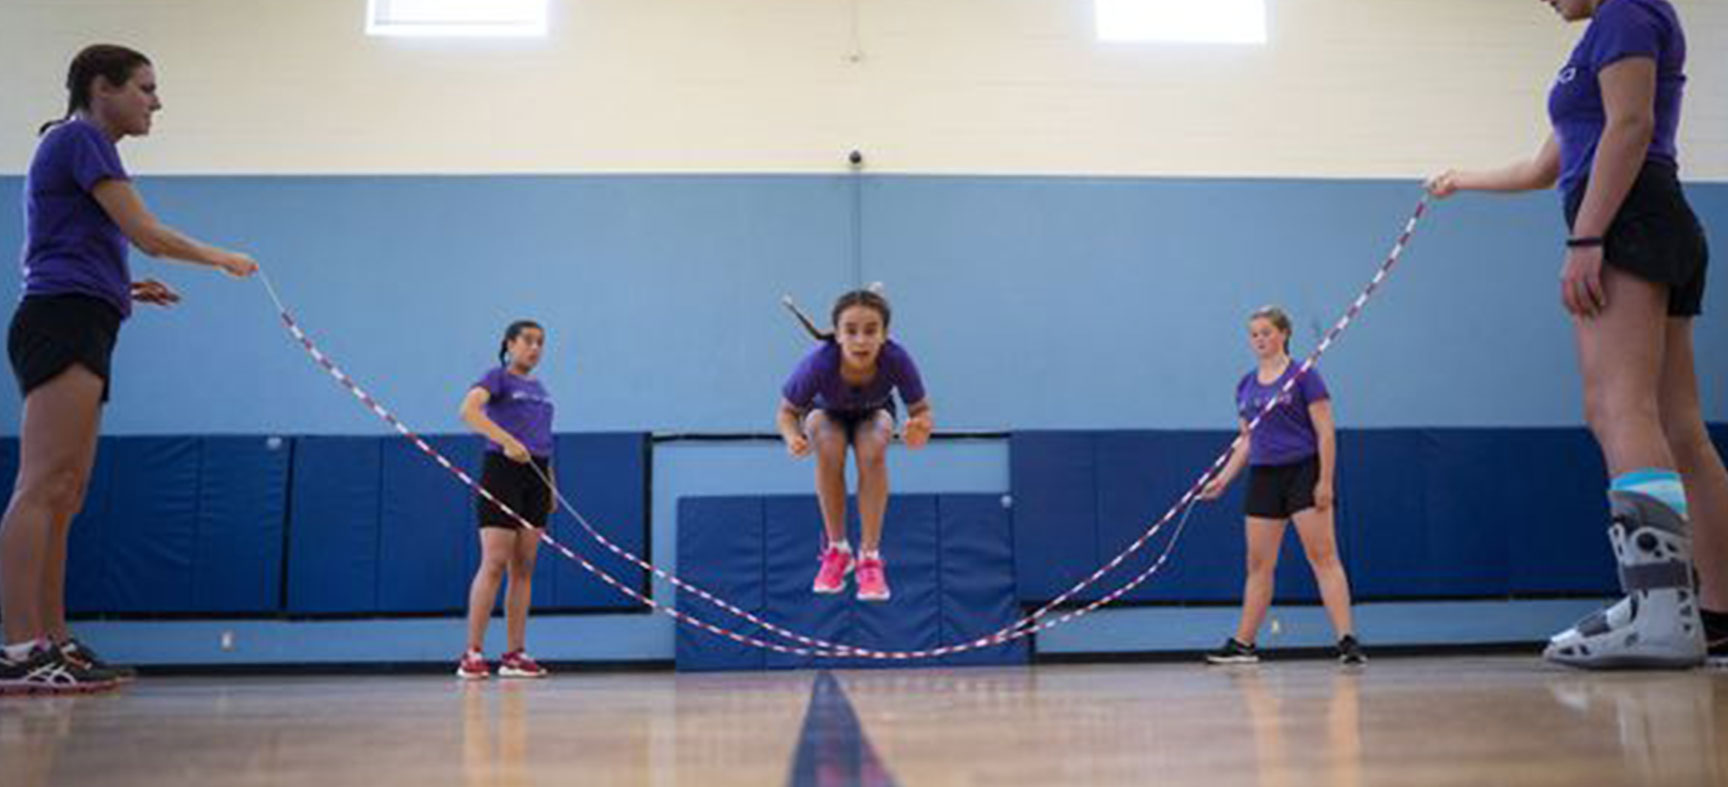 Calgary rope skipping athletes pushing for more recognition